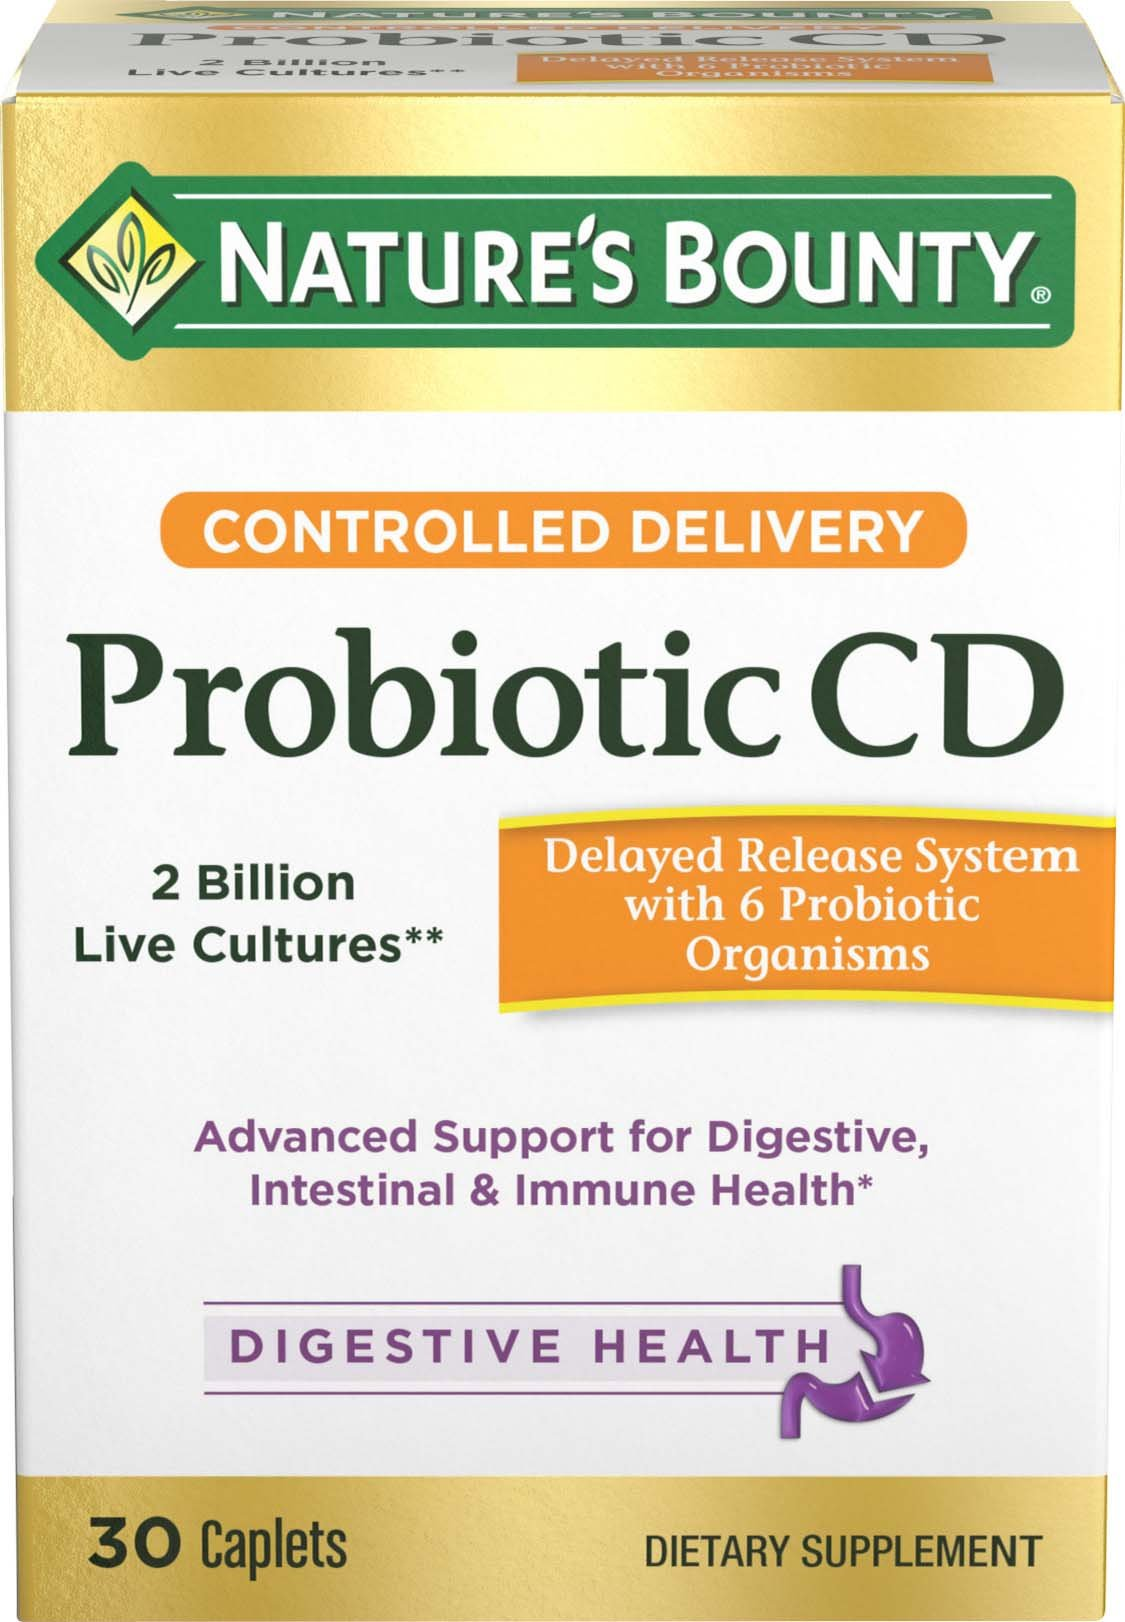 Nature's Bounty Controlled Delivery Probiotic CD, 30 Caplets